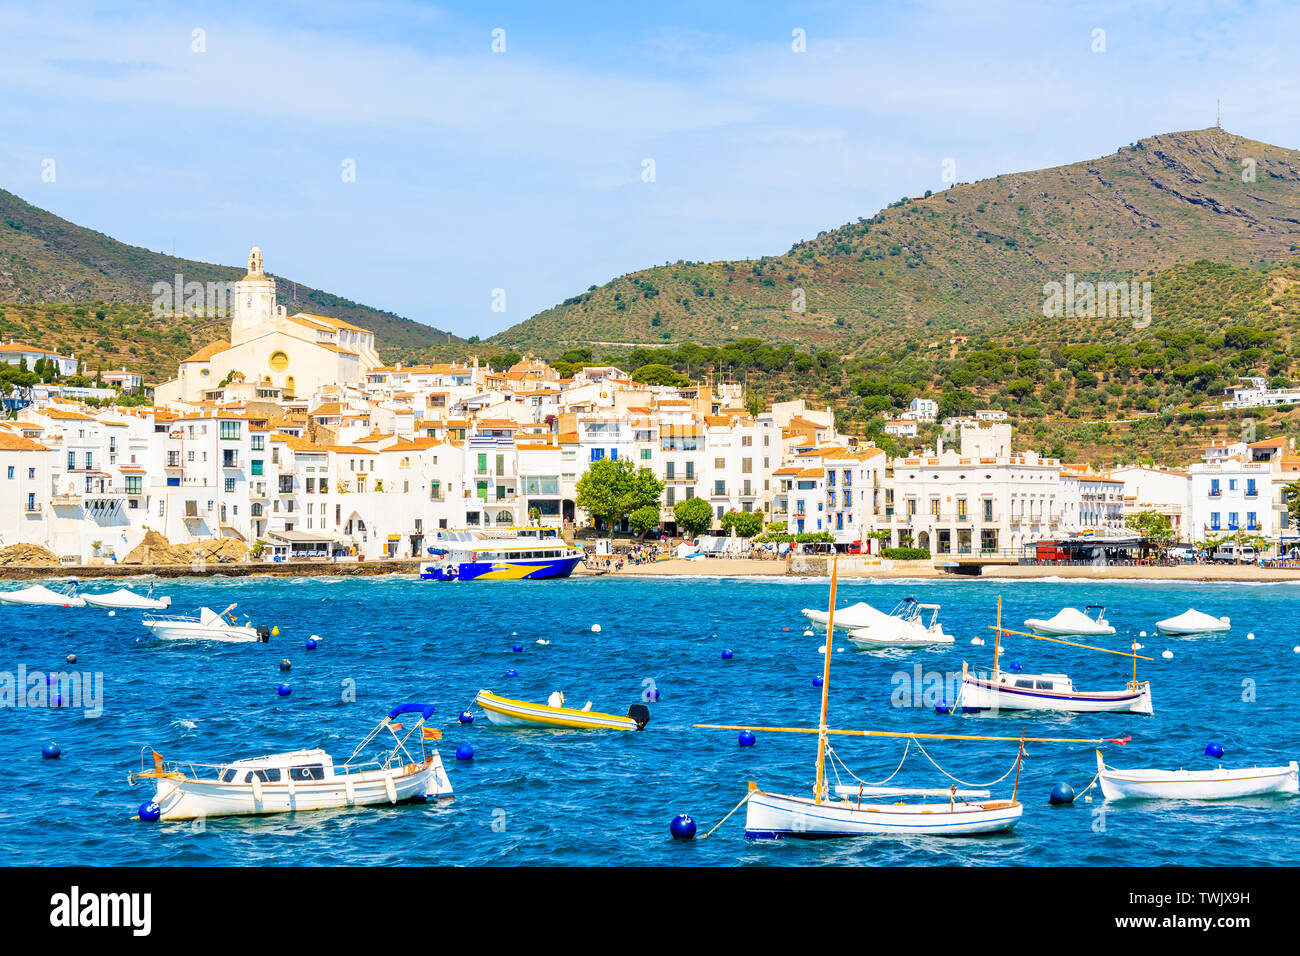 Fishing boats on sea in Cadaques white village, Costa Brava, Spain Stock Photo